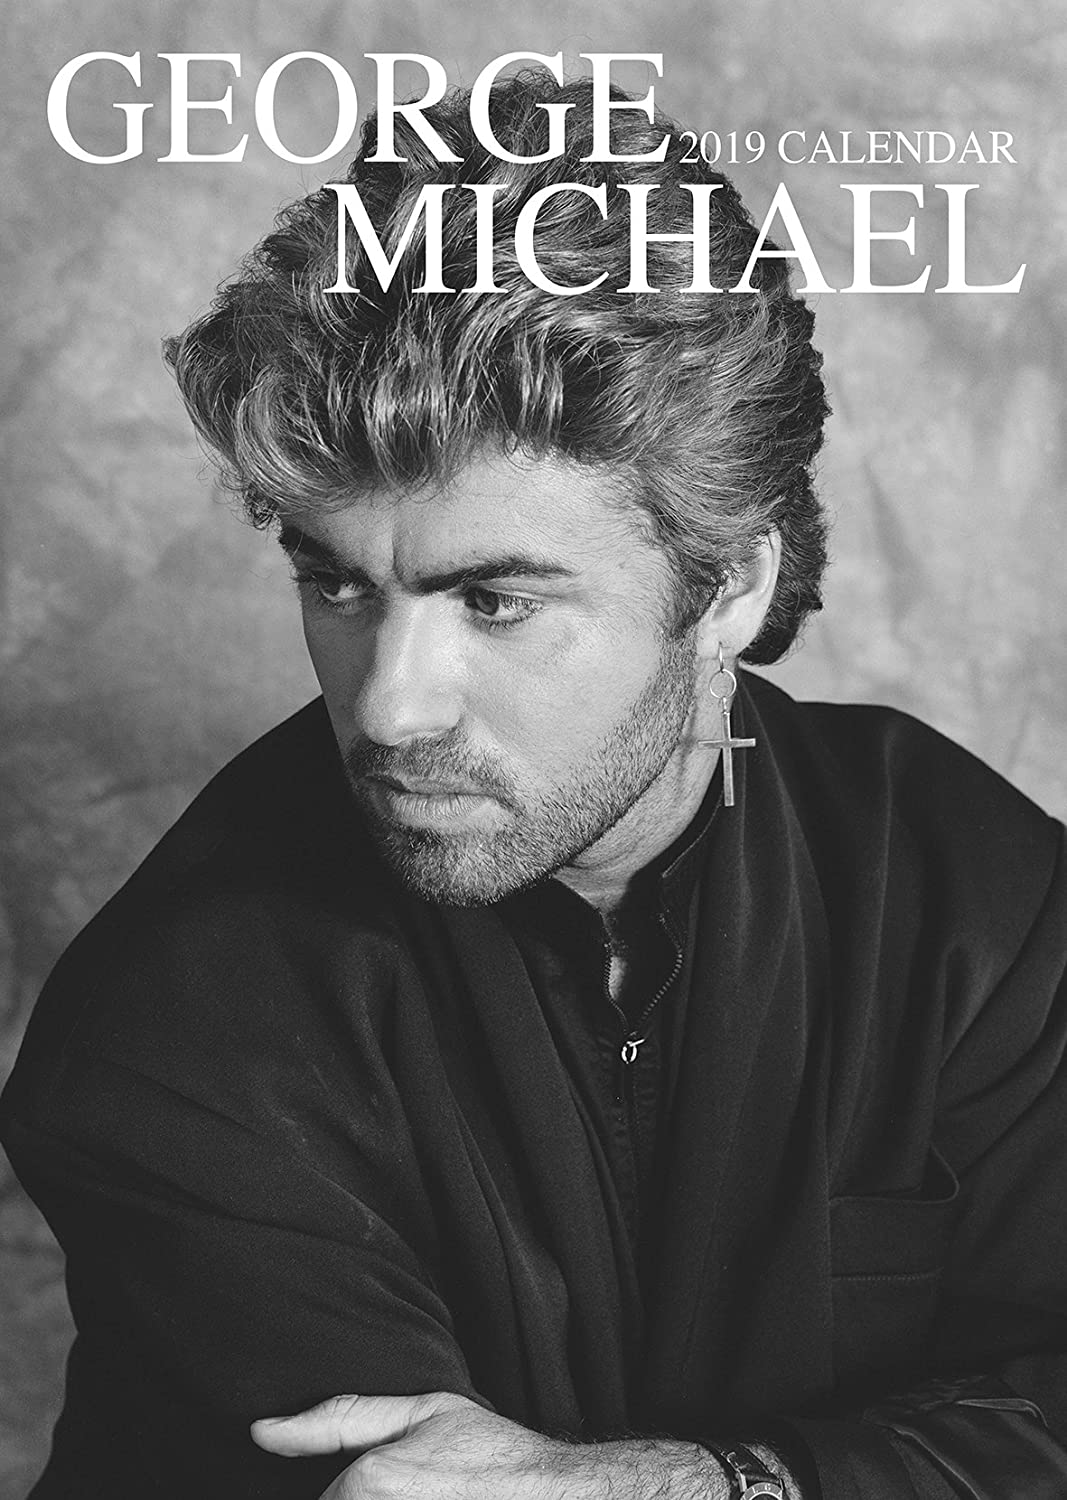 GEORGE MICHAEL CALENDAR 2019 LARGE (A3) SIZE POSTER SIZE WALL CALENDAR FACTORY SEALED BY OC (WITH A FREE XMAS GIFT FROM DEC 1ST)